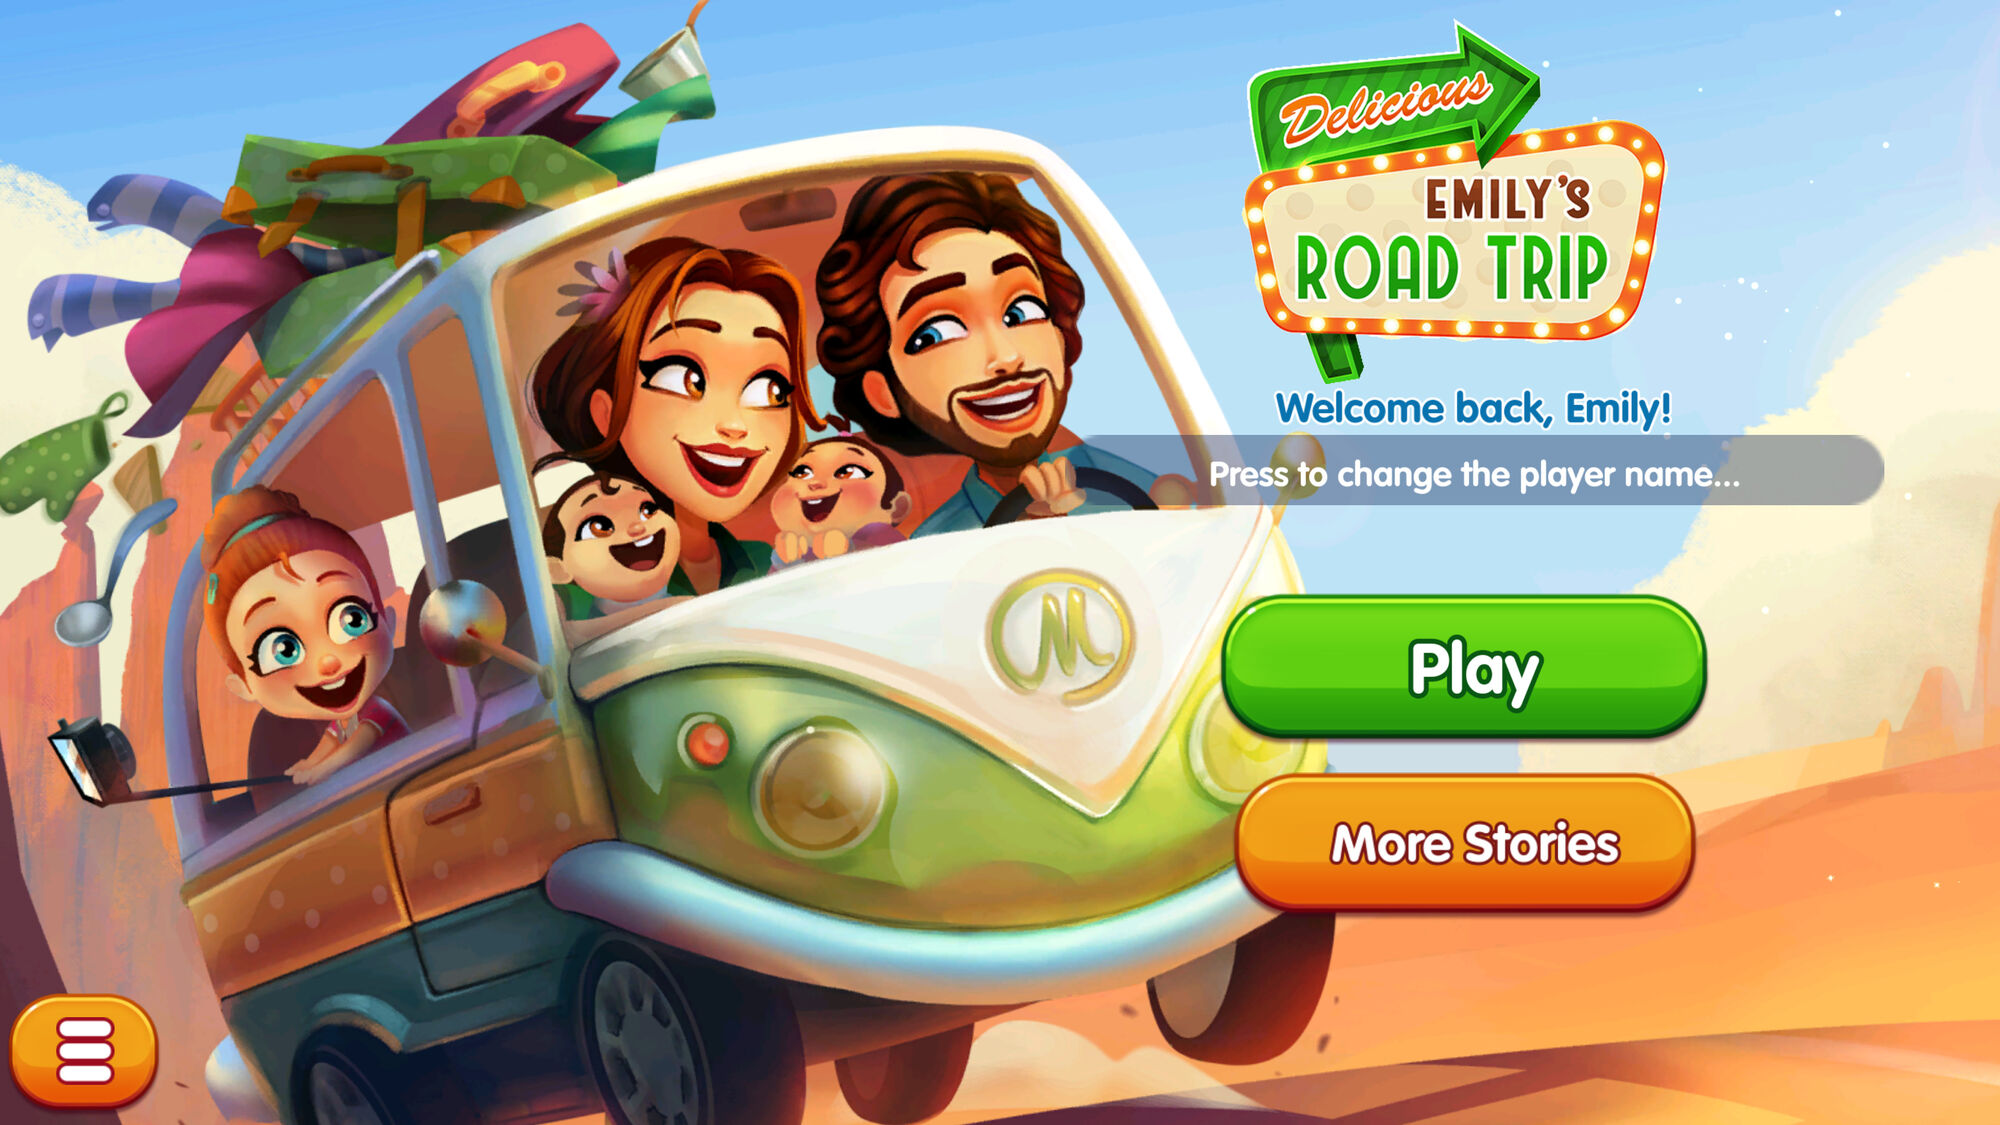 download game delicious emily home sweet home full version free